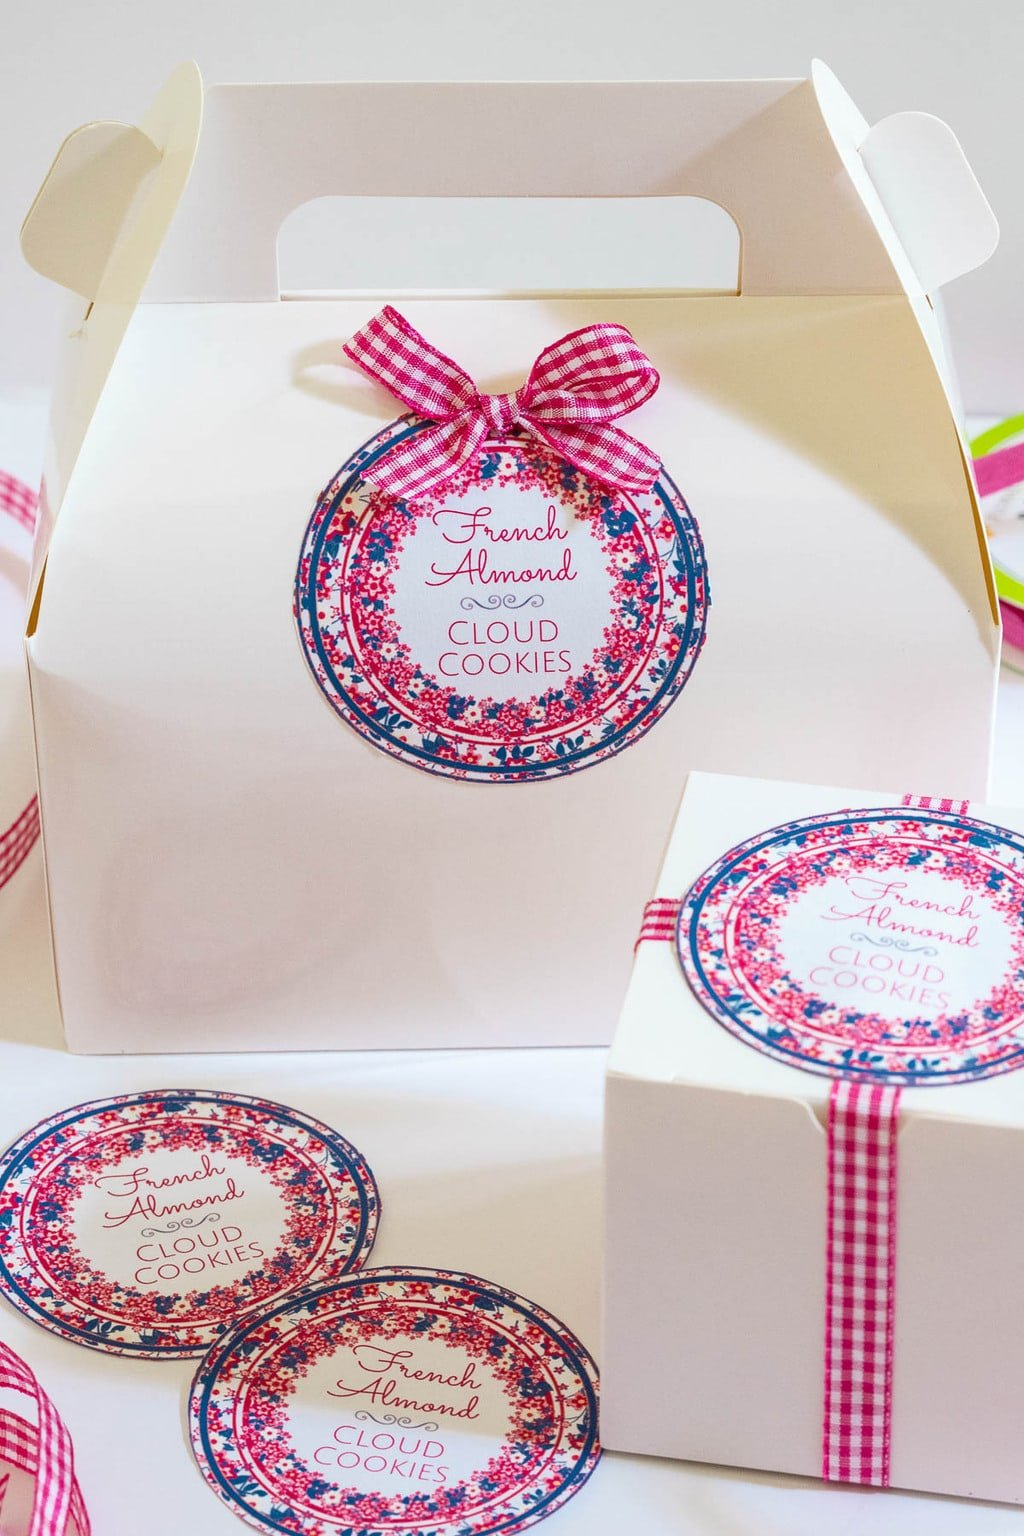 Vertical photo of Ridiculously Easy French Almond Cookie gift boxes with custom cookie labels on the boxes.